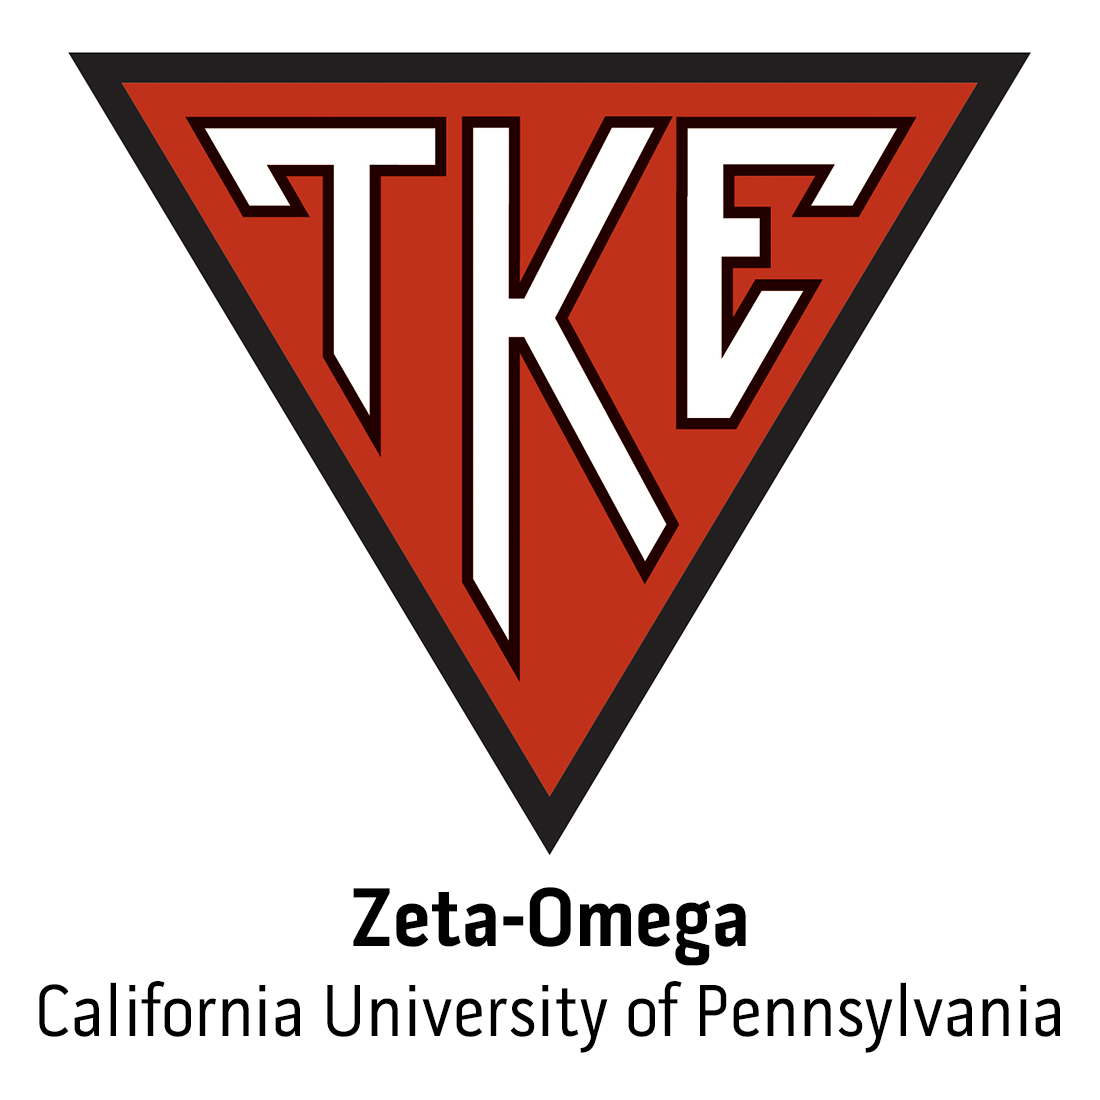 Zeta-Omega Chapter at California University of Pennsylvania